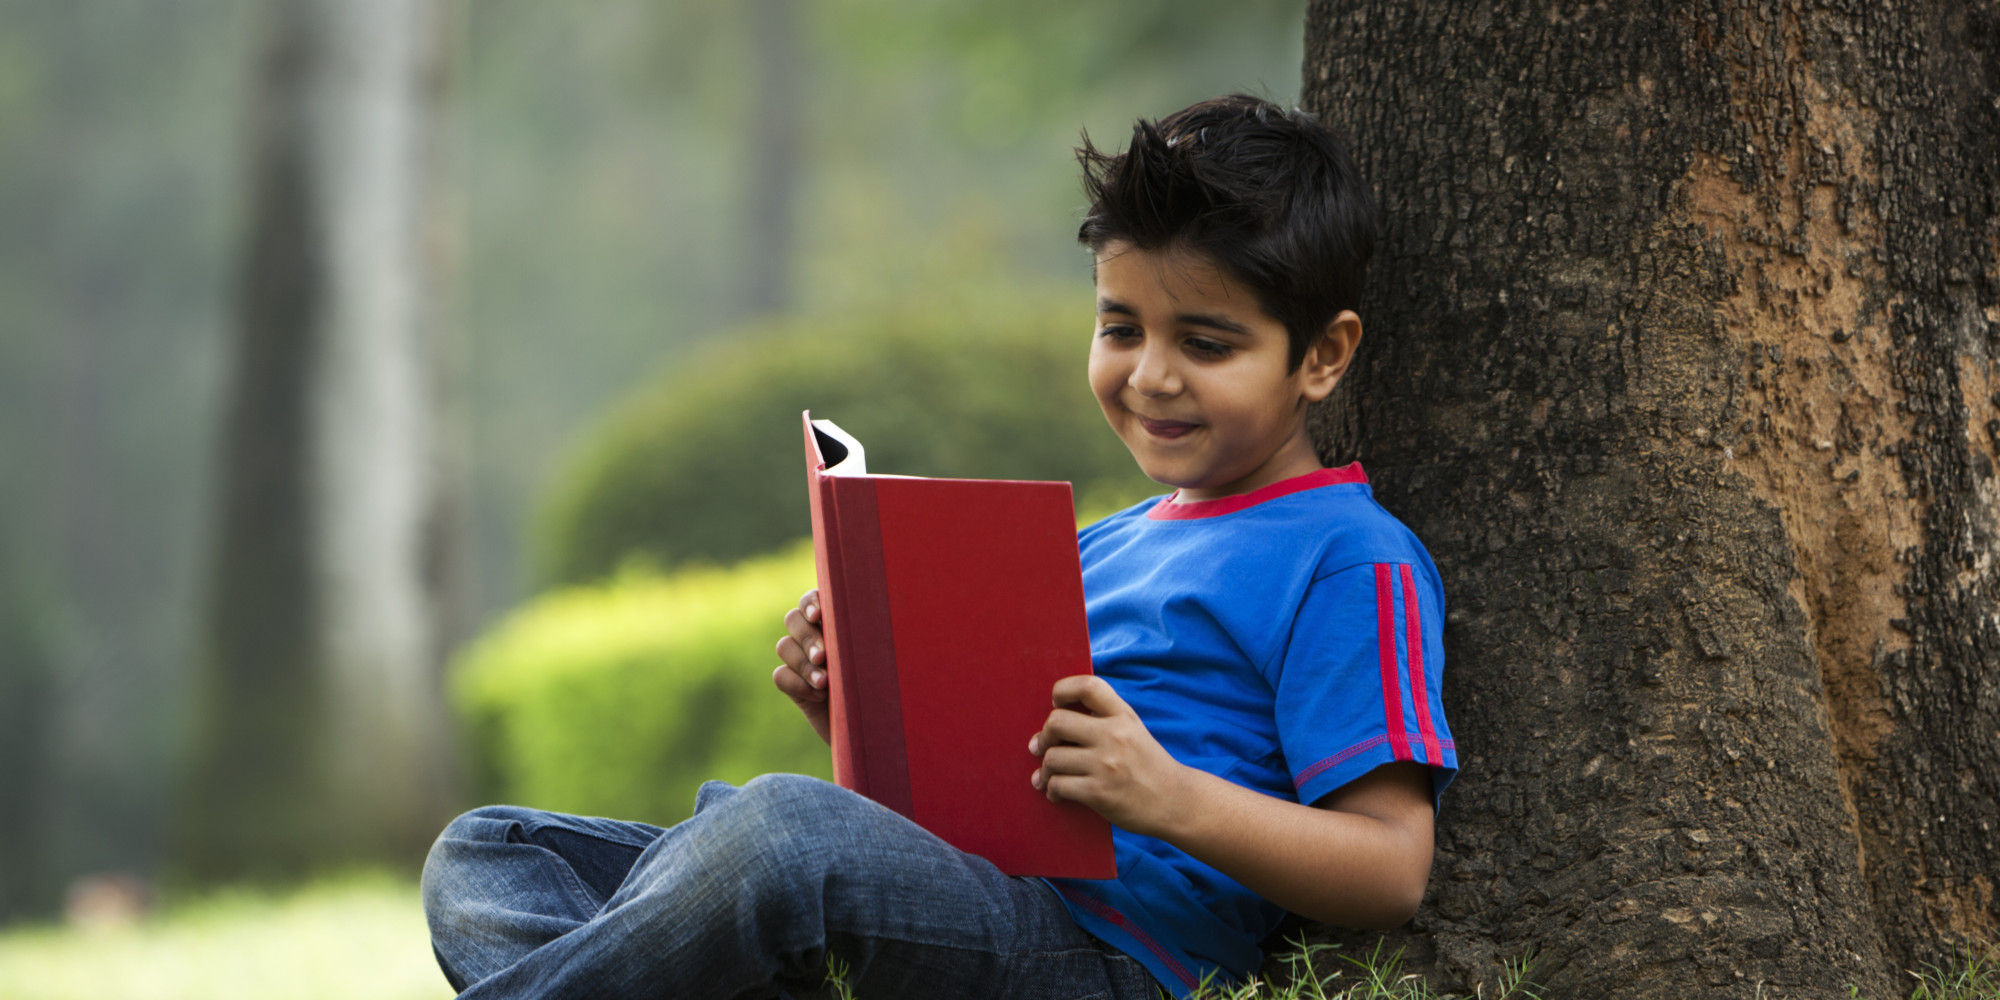 Boy (6-7) reading book under tree